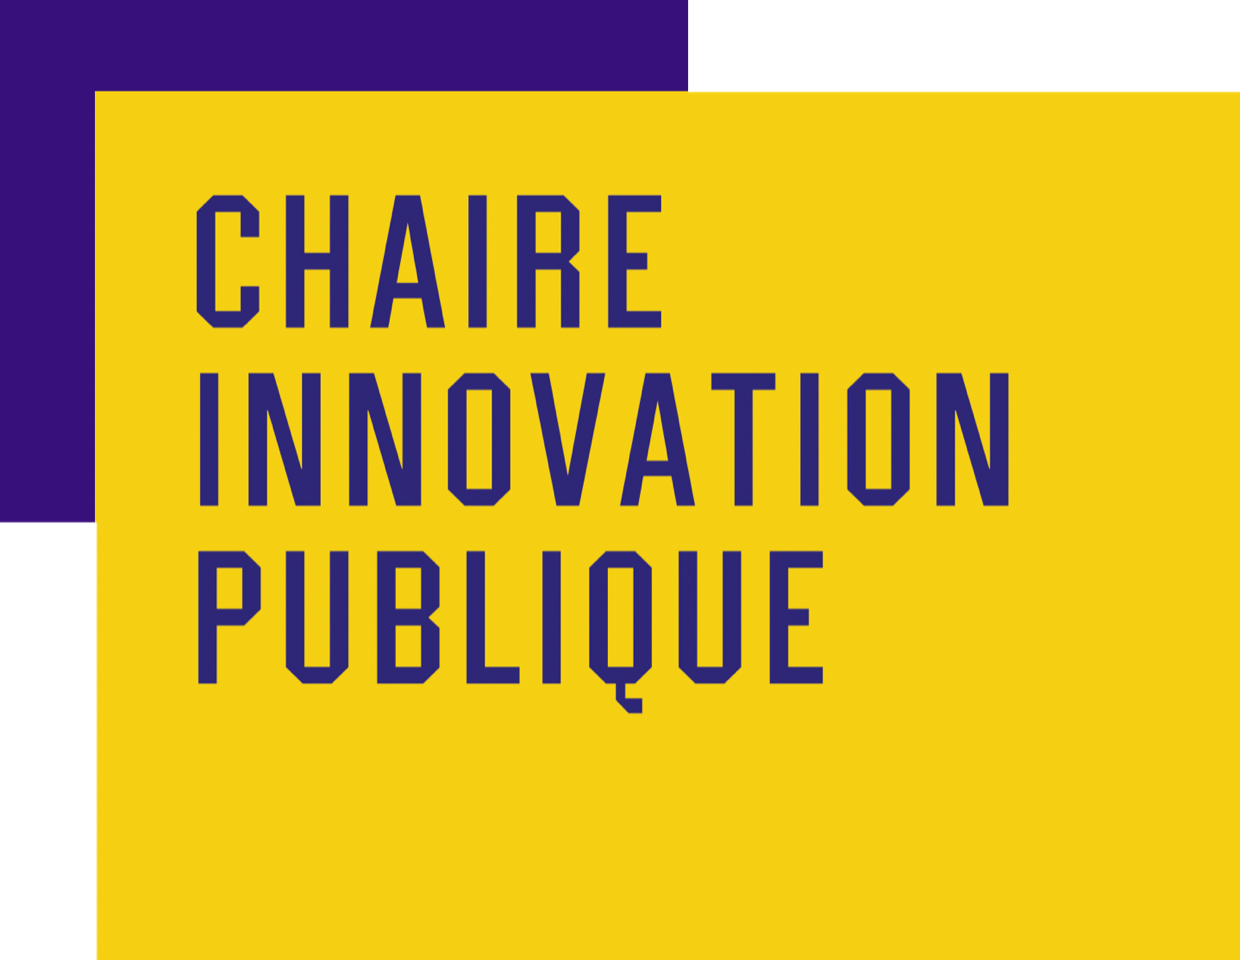 Chaire Innovation Publique